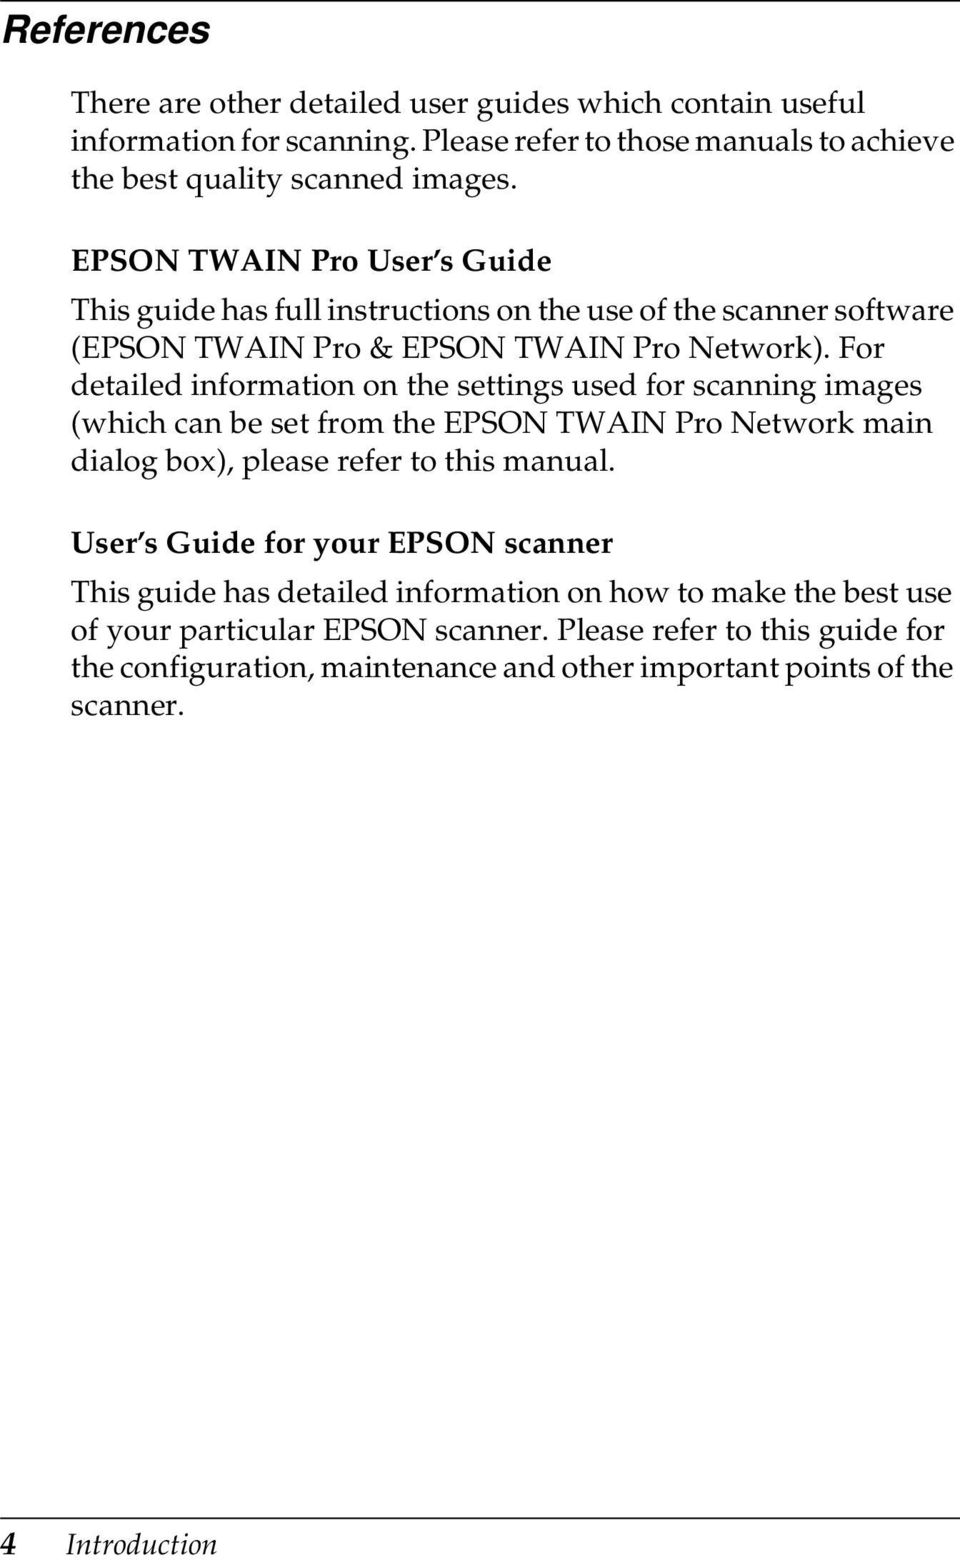 For detailed information on the settings used for scanning images (which can be set from the EPSON TWAIN Pro Network main dialog box), please refer to this manual.